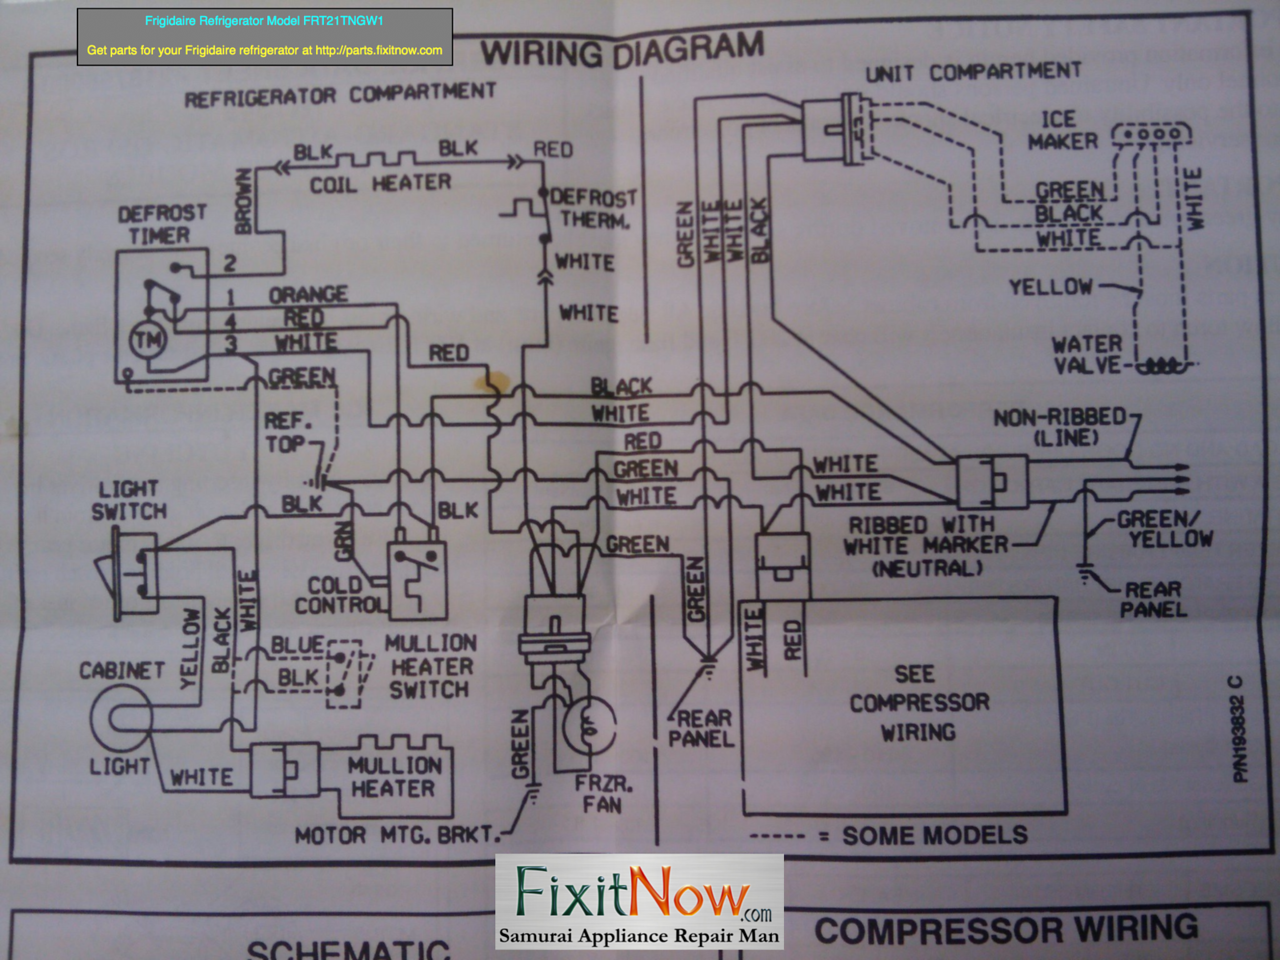 wiring diagrams and schematics appliantology rh appliantology smugmug com Frigidaire Side by Side Diagram frigidaire freezer wiring diagram